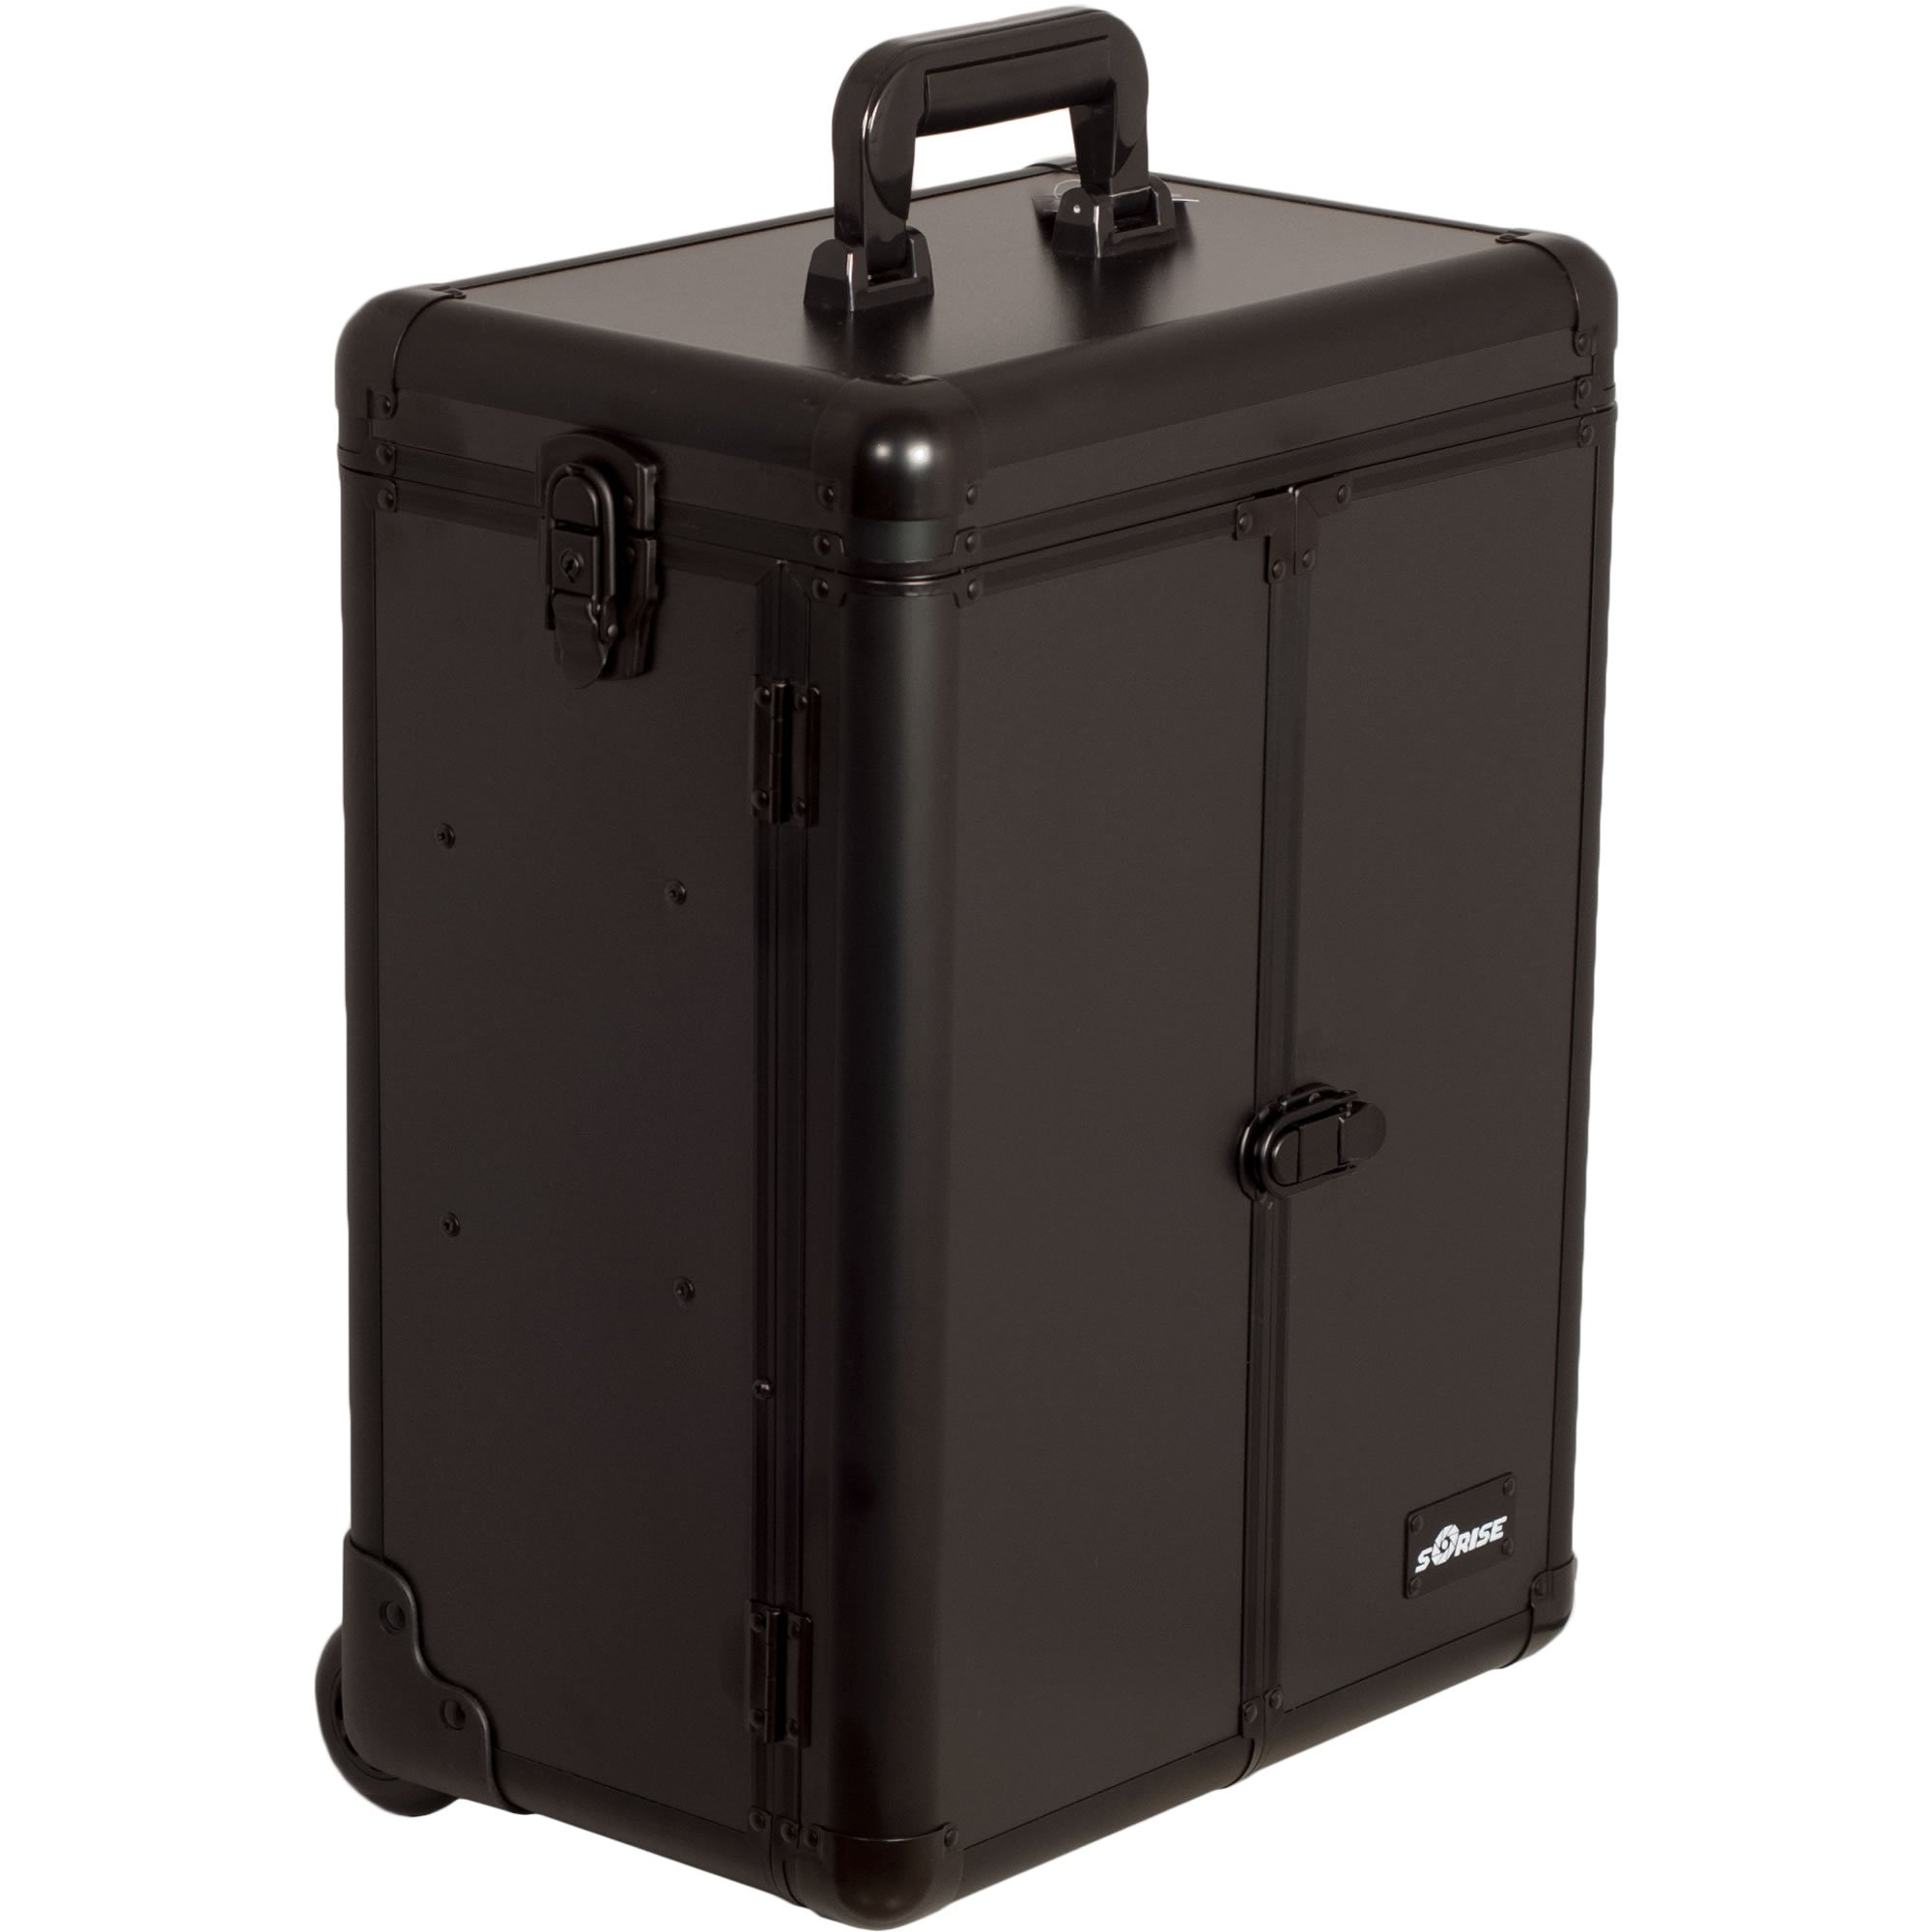 SUNRISE Professional Makeup Case on Wheels E6306 Aluminum, French Doors, 2 Large Drawers, Locking with Mirror, Smooth Matte